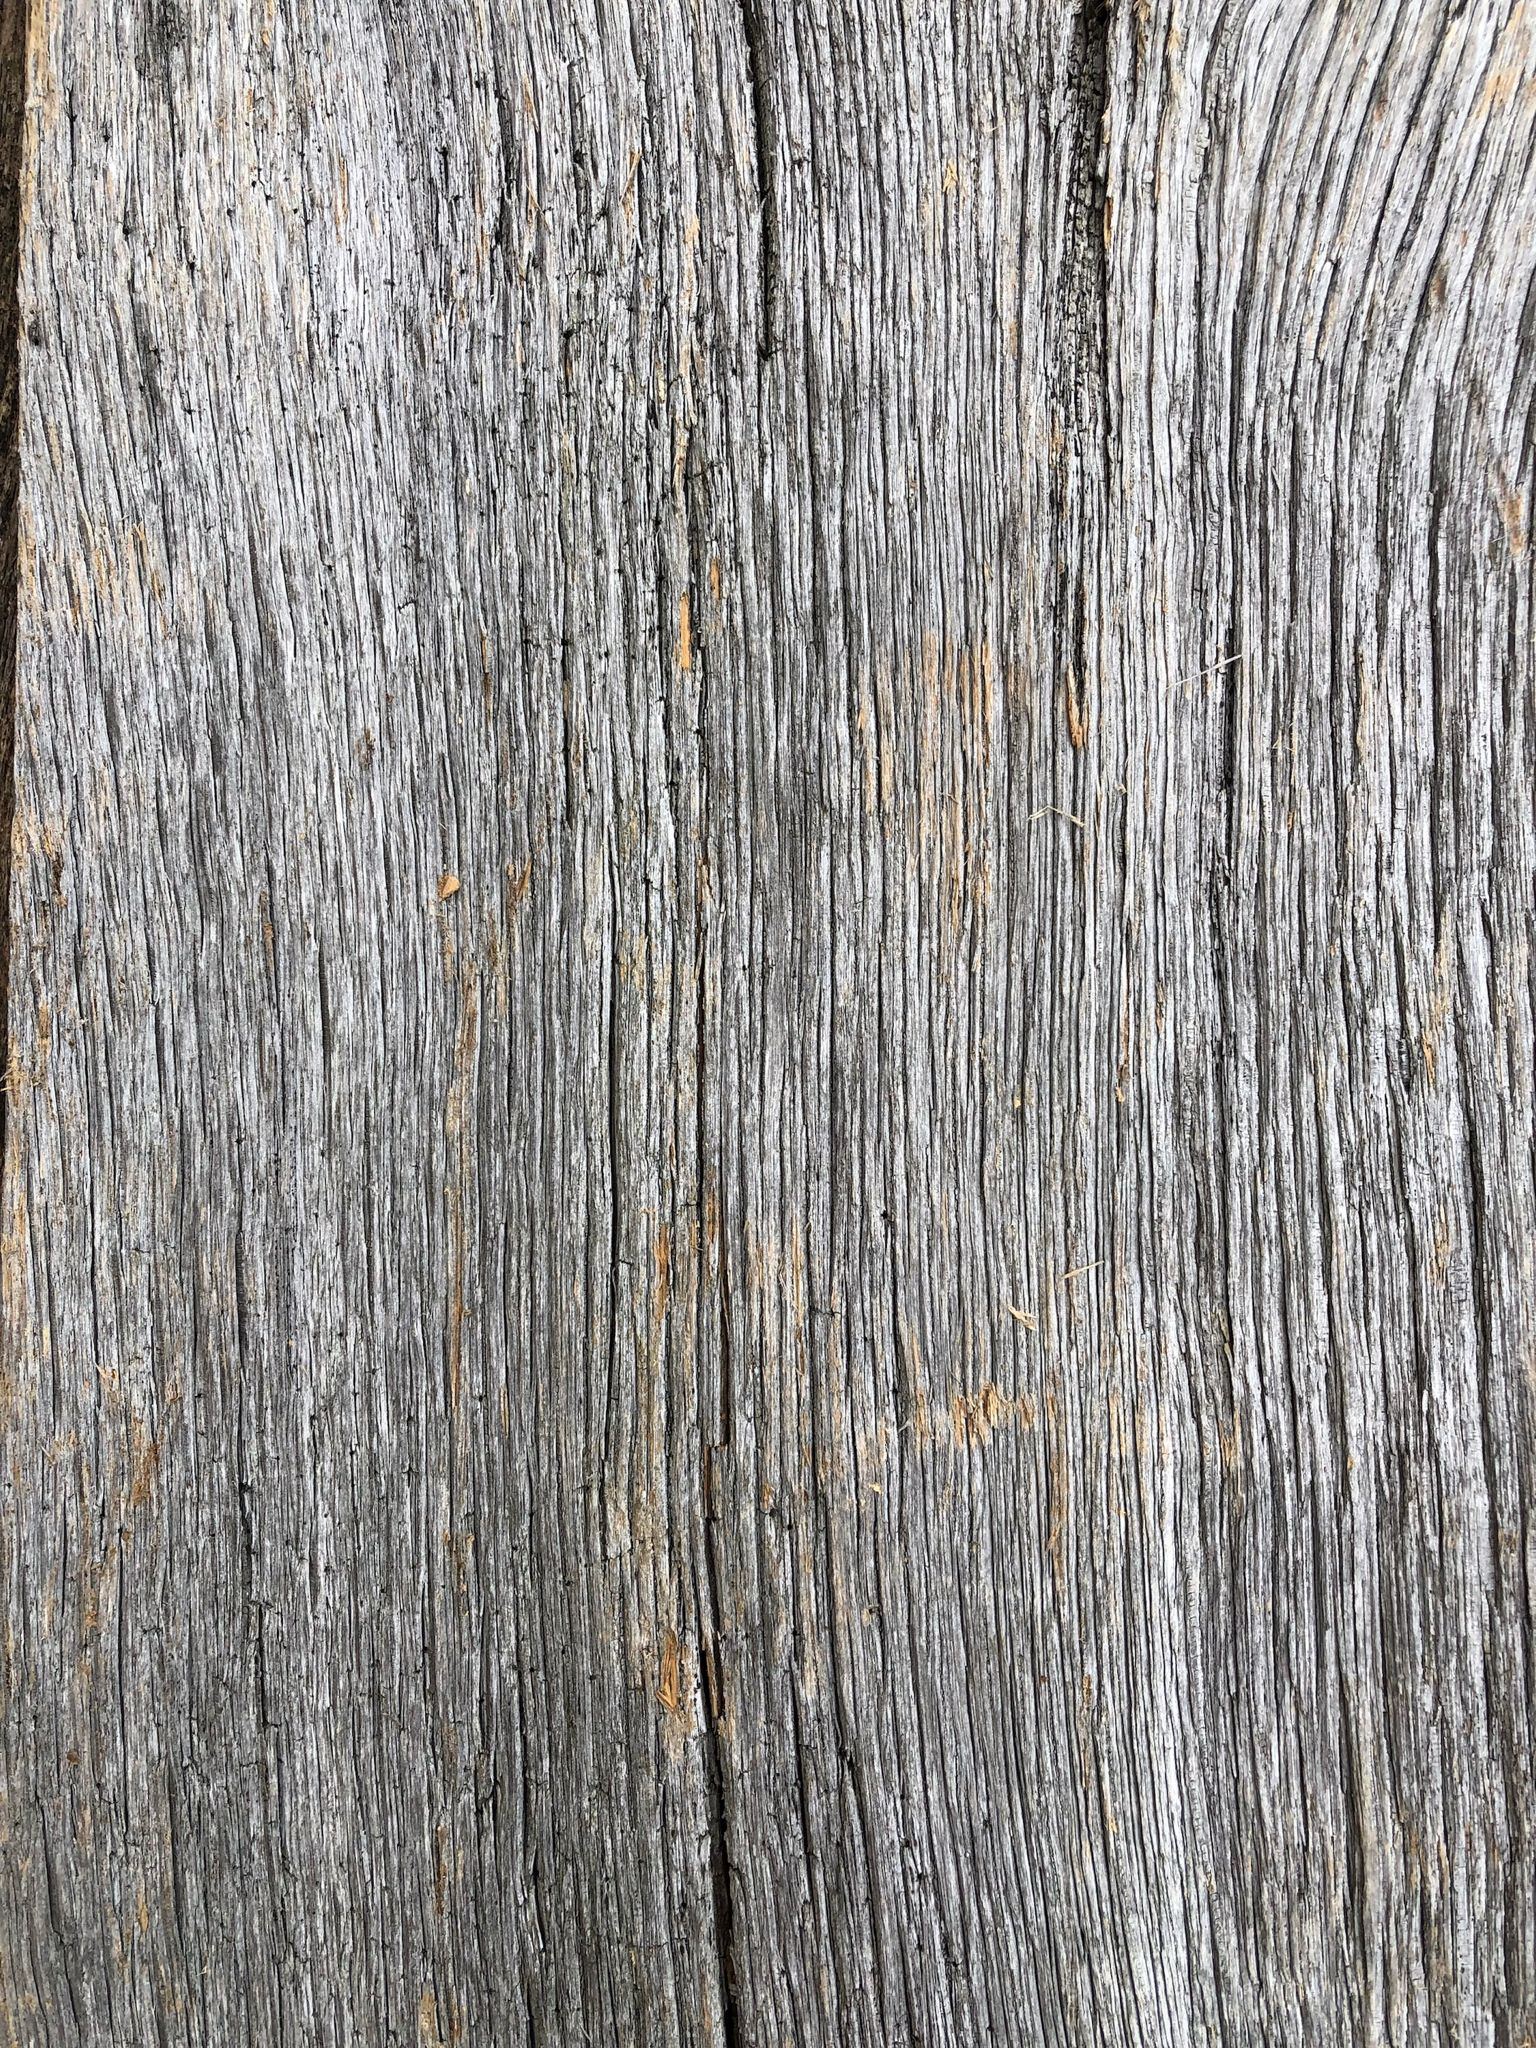 Reclaimed Tobacco Barn Wood From Kentucky At Front Range Timber In